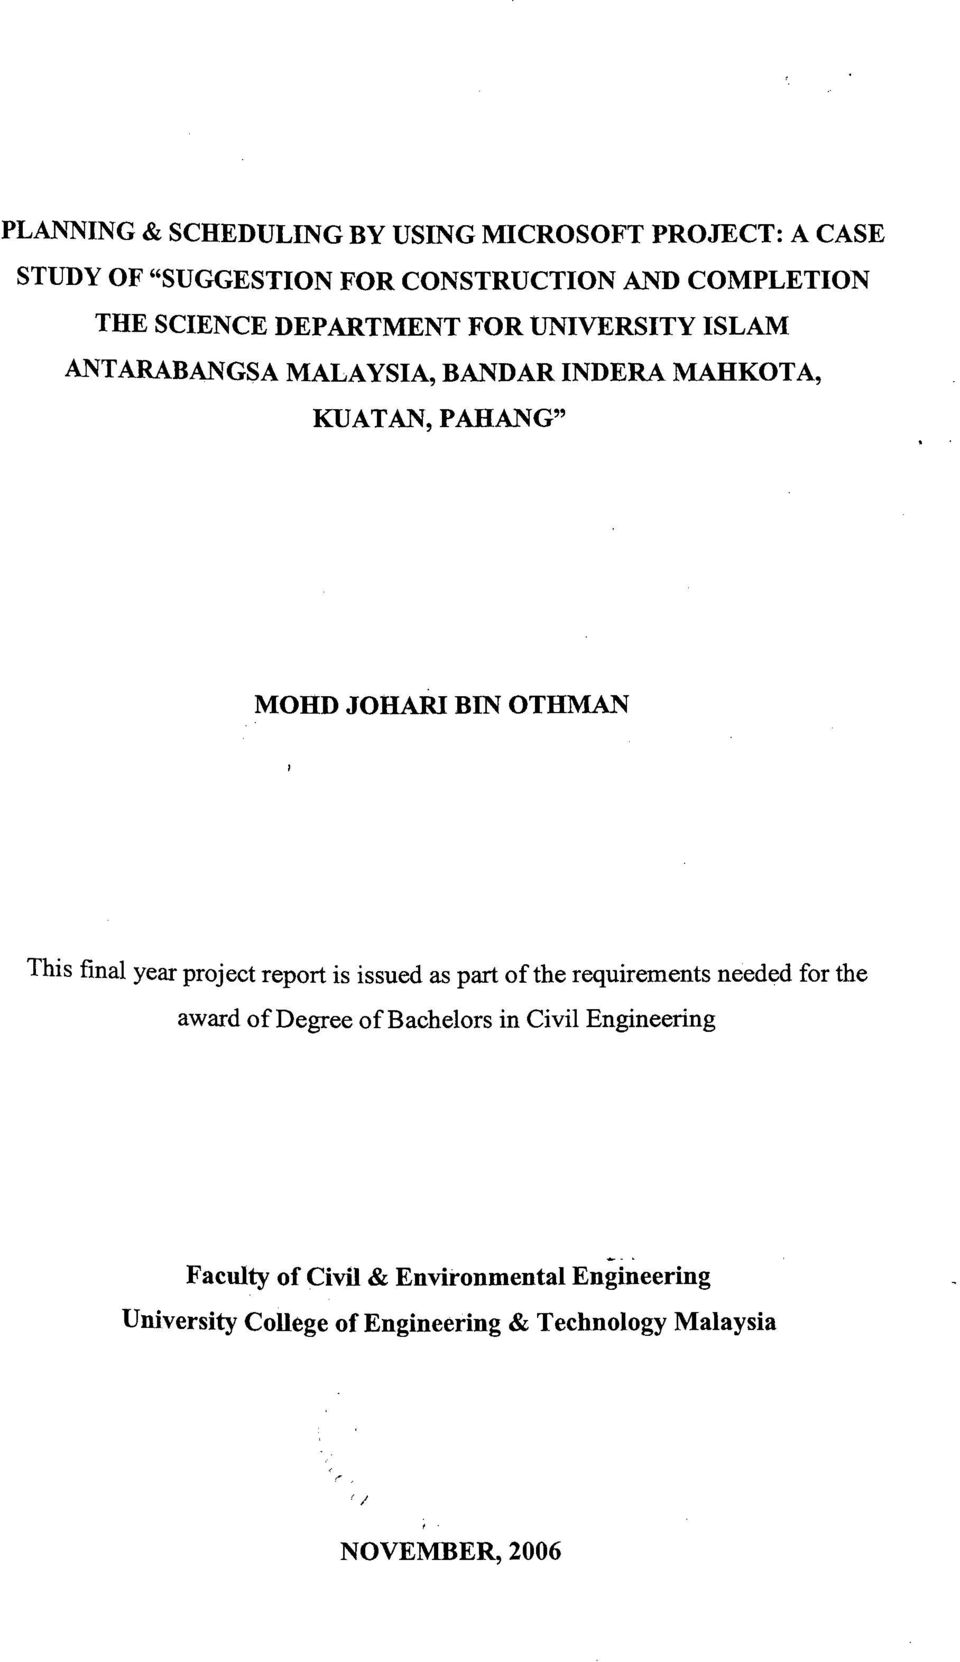 final year project report is issued as past of the requirements needed for the award of Degree of Bachelors in Civil